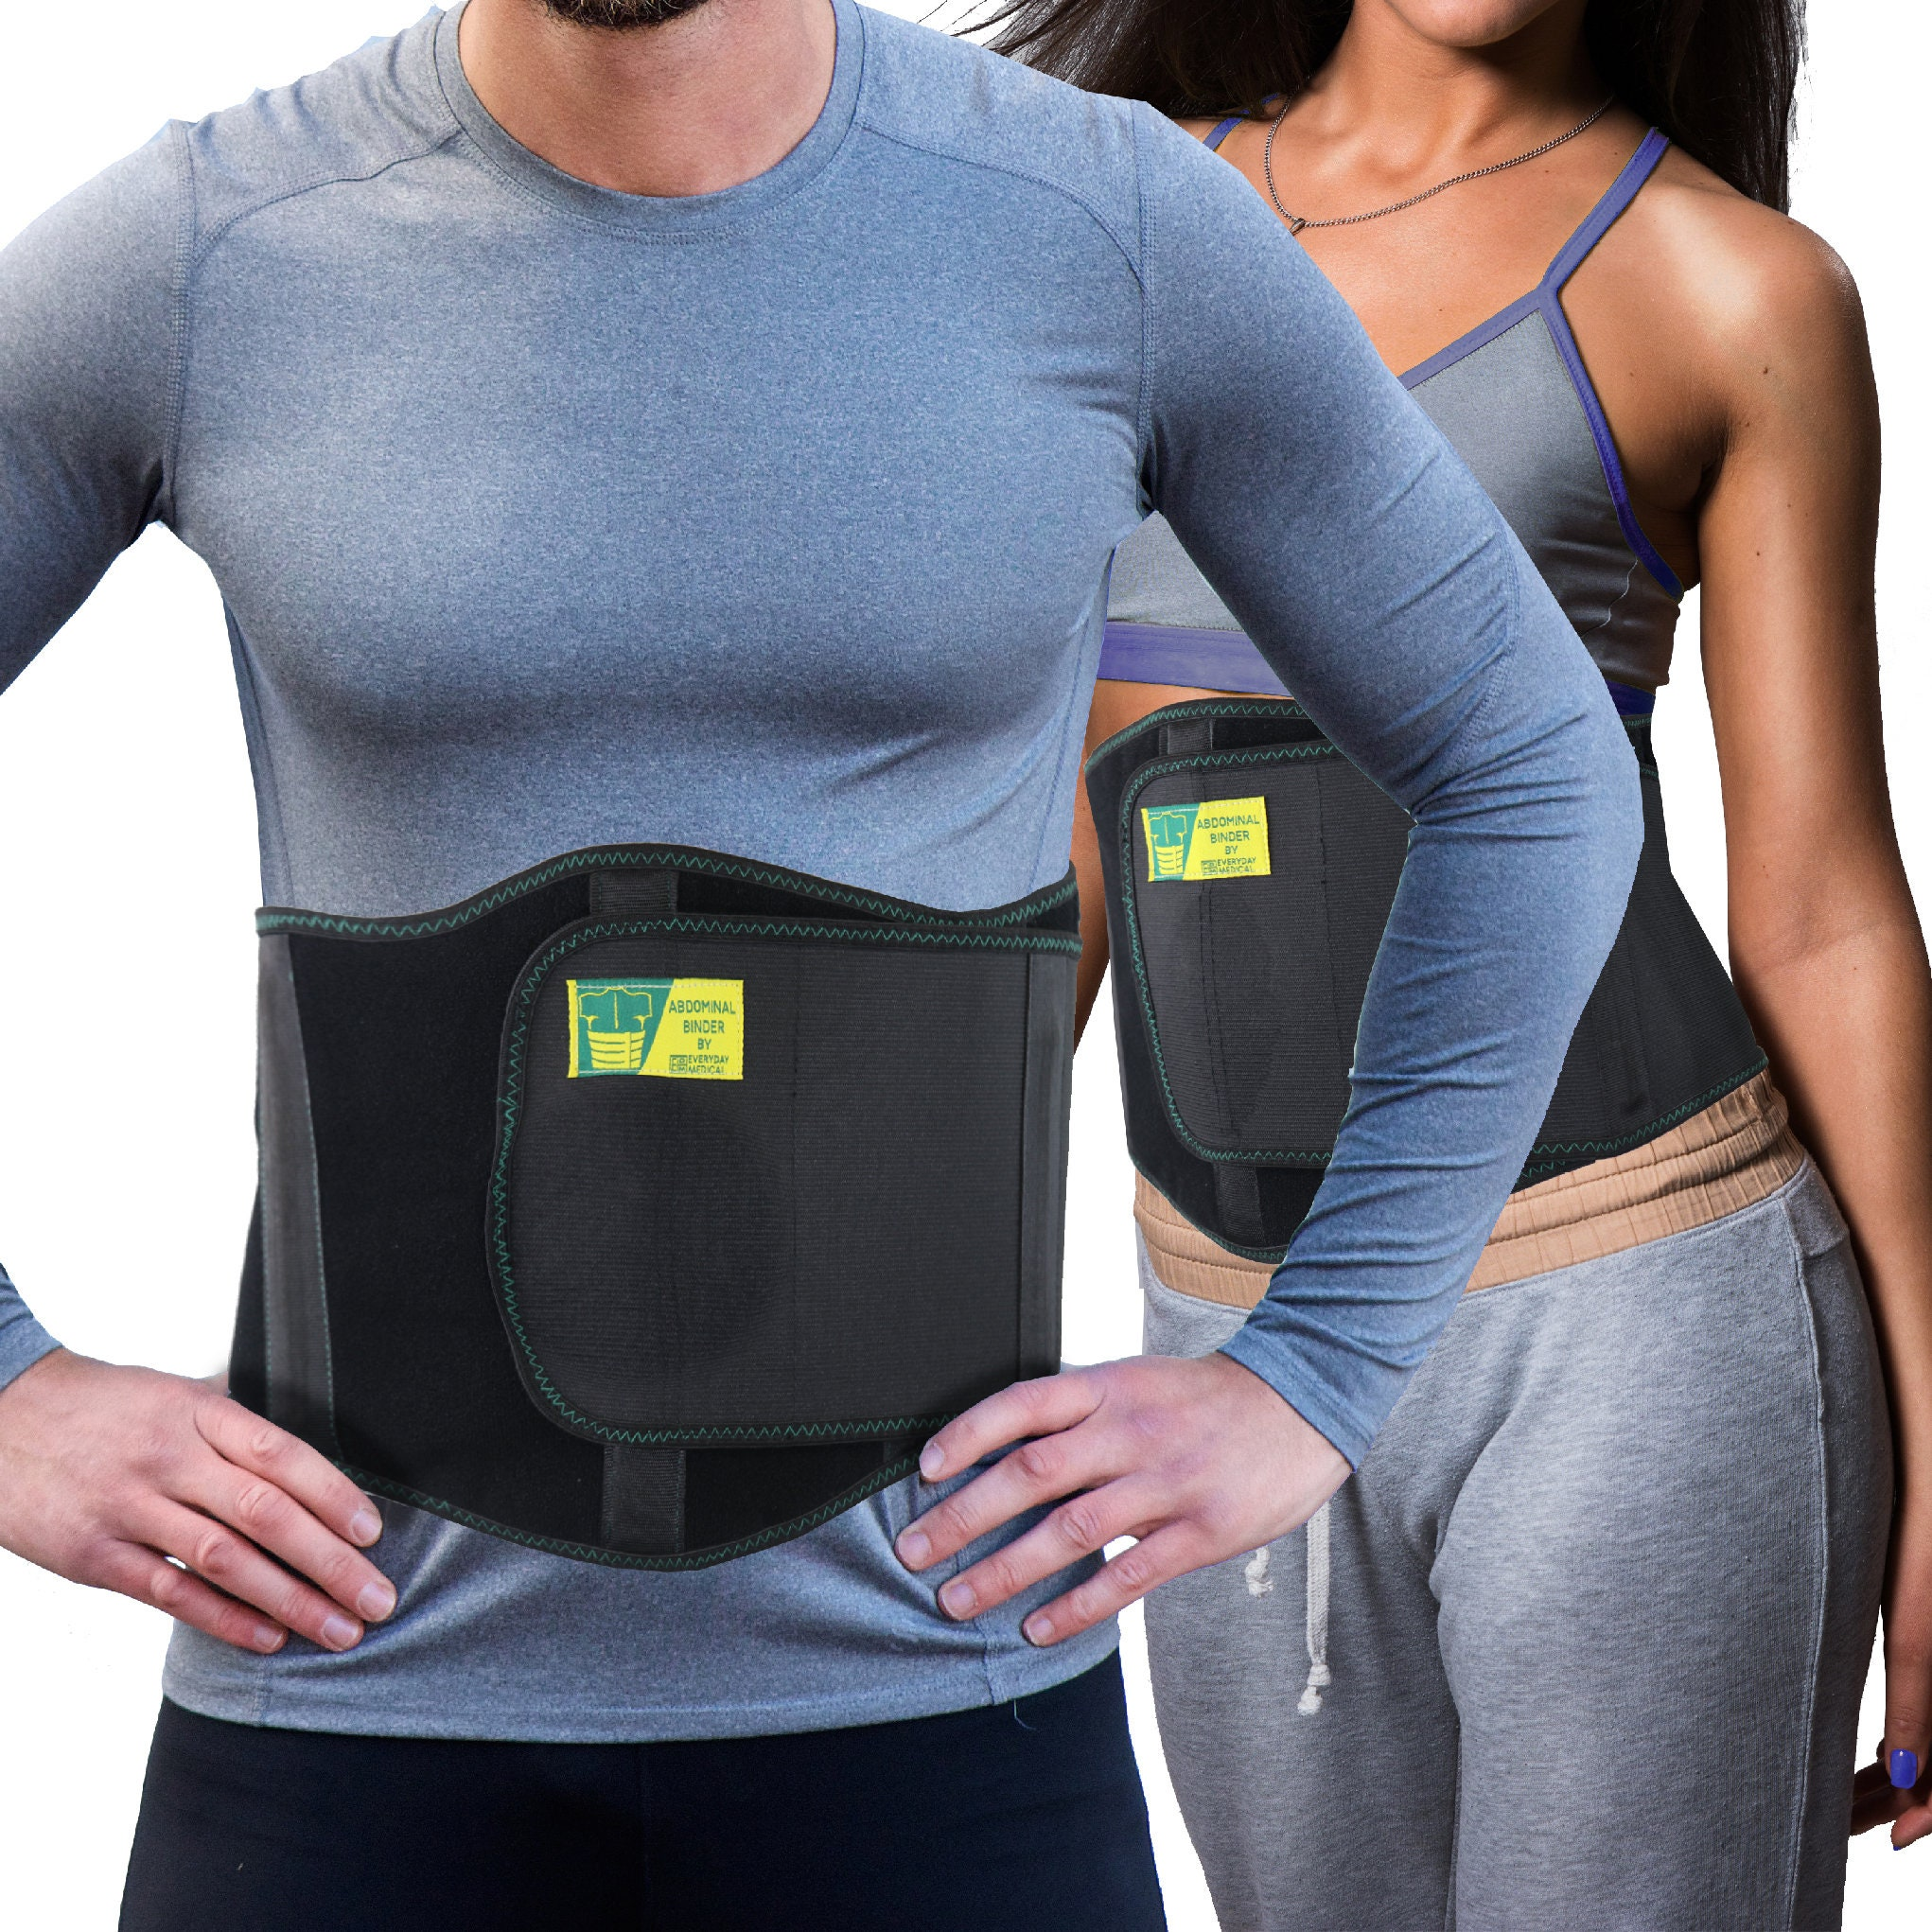 Umbilical Hernia Belt Ergonomic Abdominal Hernia Support For Men And Women By Everyday Medical